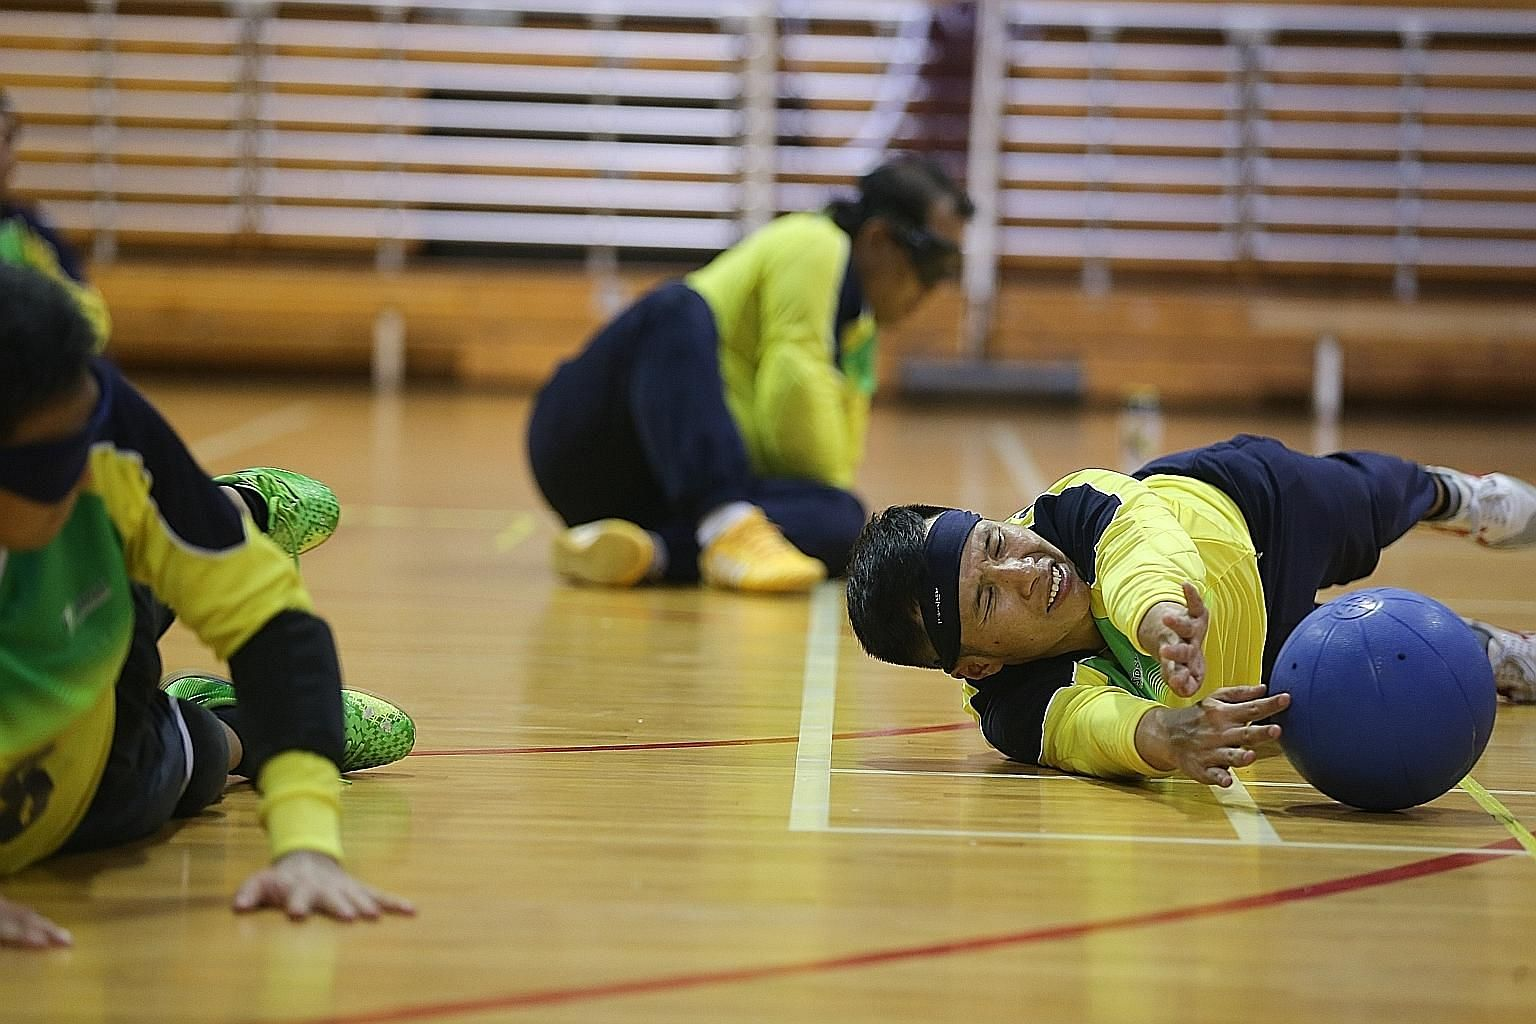 Kelvin Tan (foreground) at a training session for goalball. This team sport for blind athletes will be included in the Asean Para Games in Singapore from Dec 3-9.